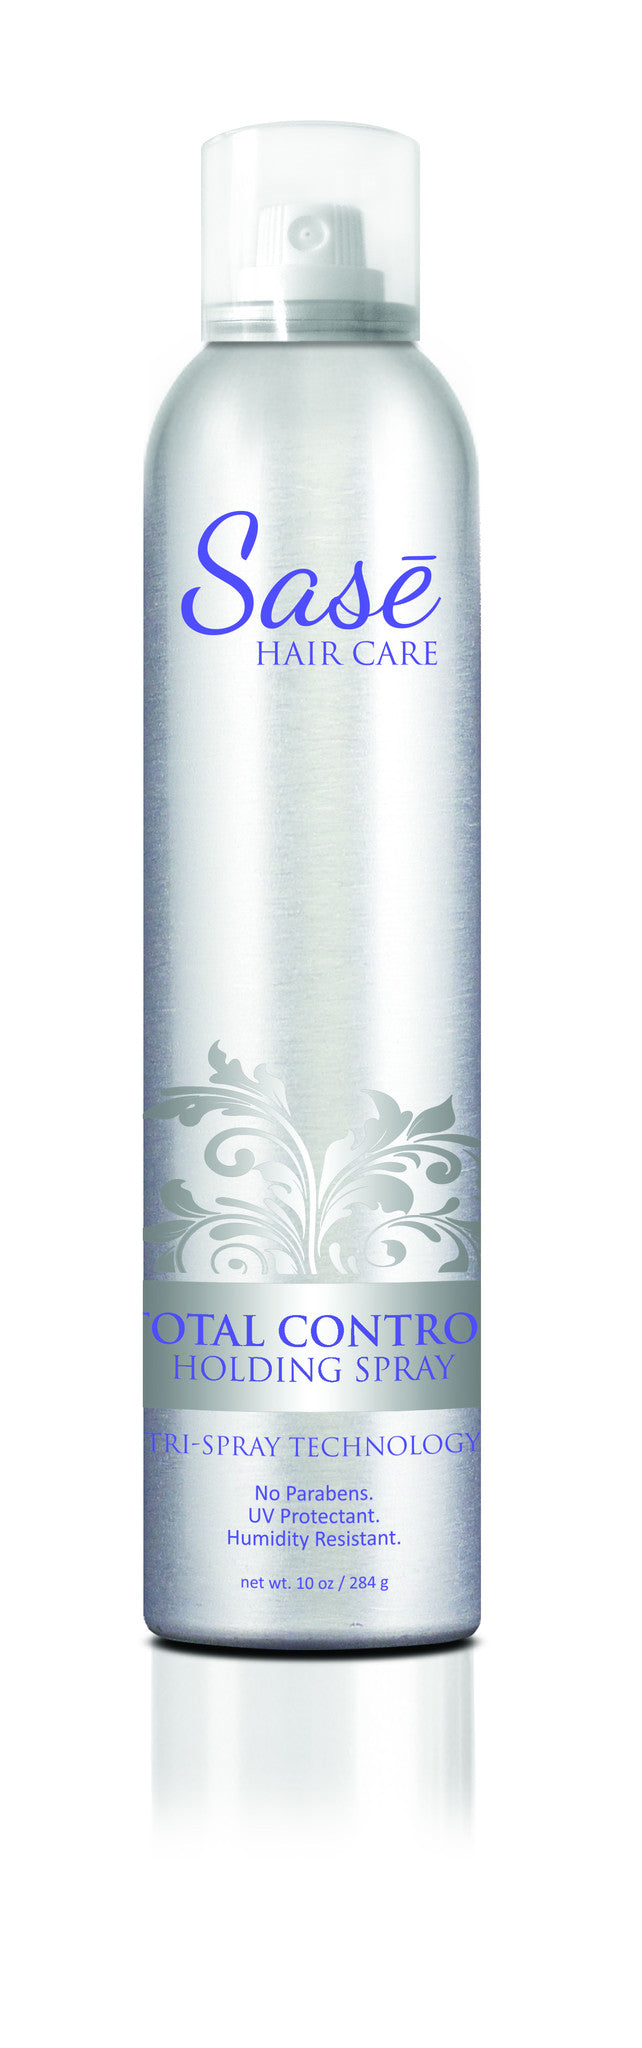 Sase Total Control Holding Spray